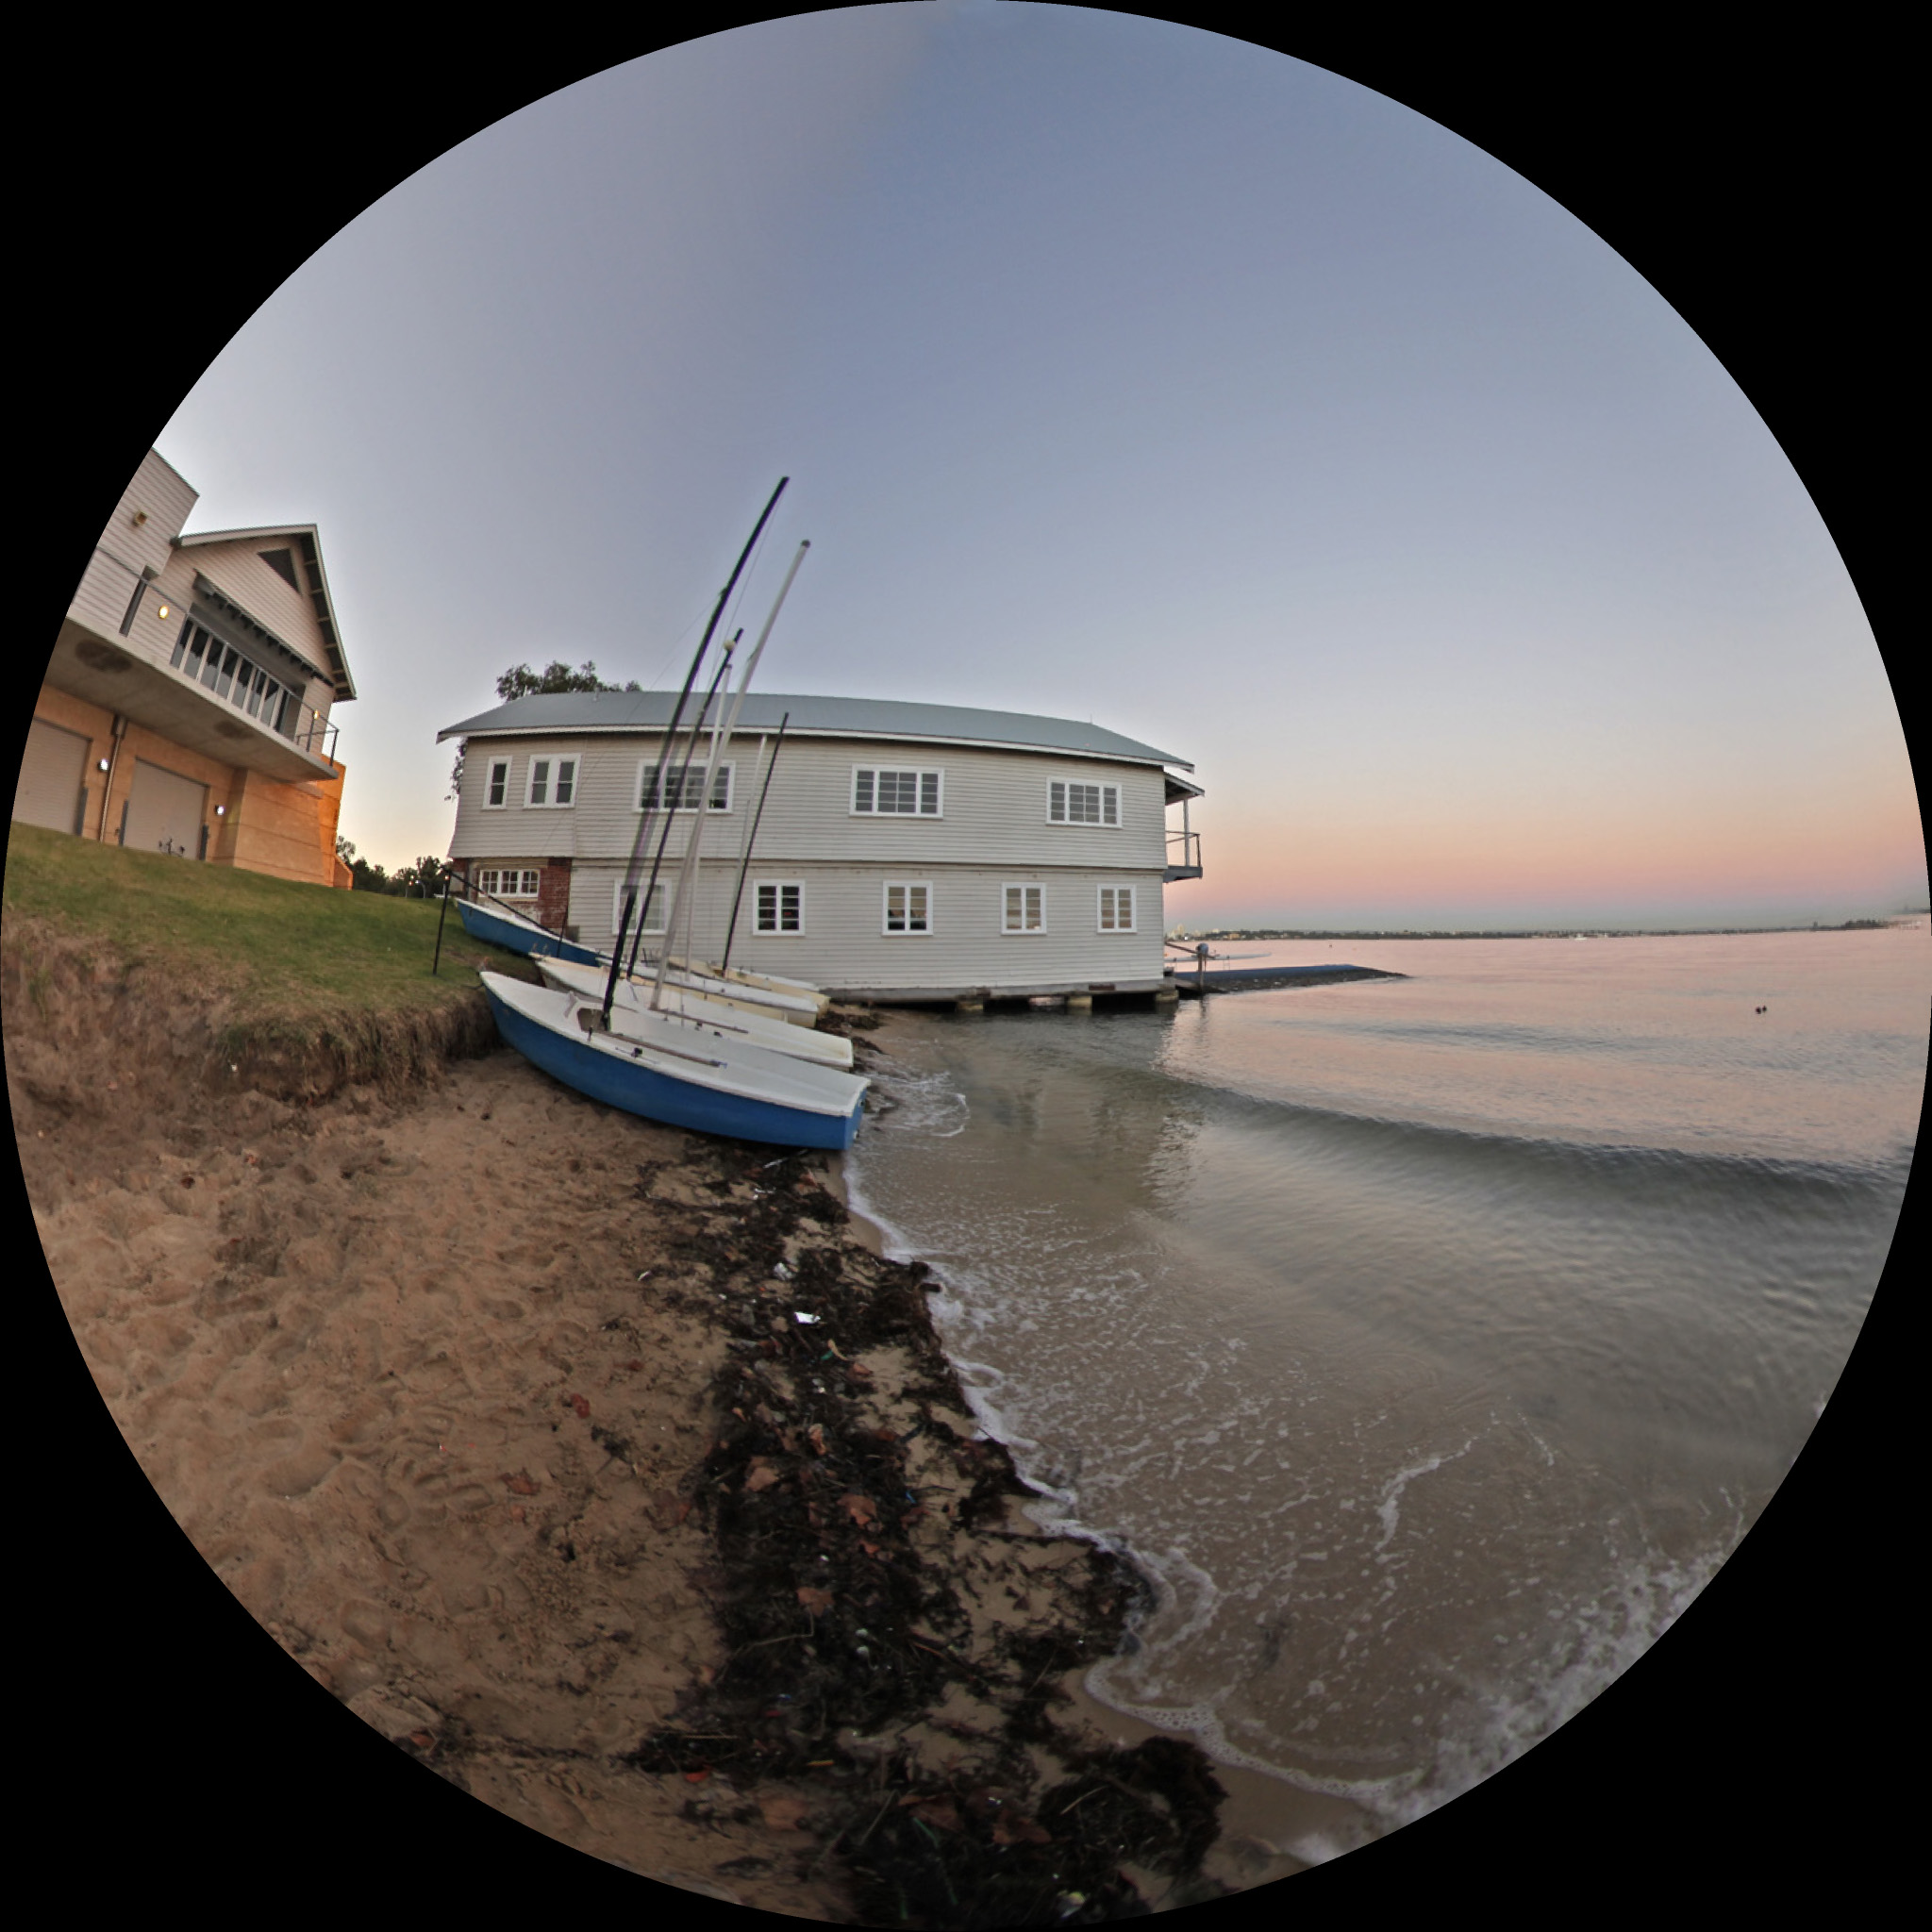 Converting a fisheye image to panoramic, spherical and